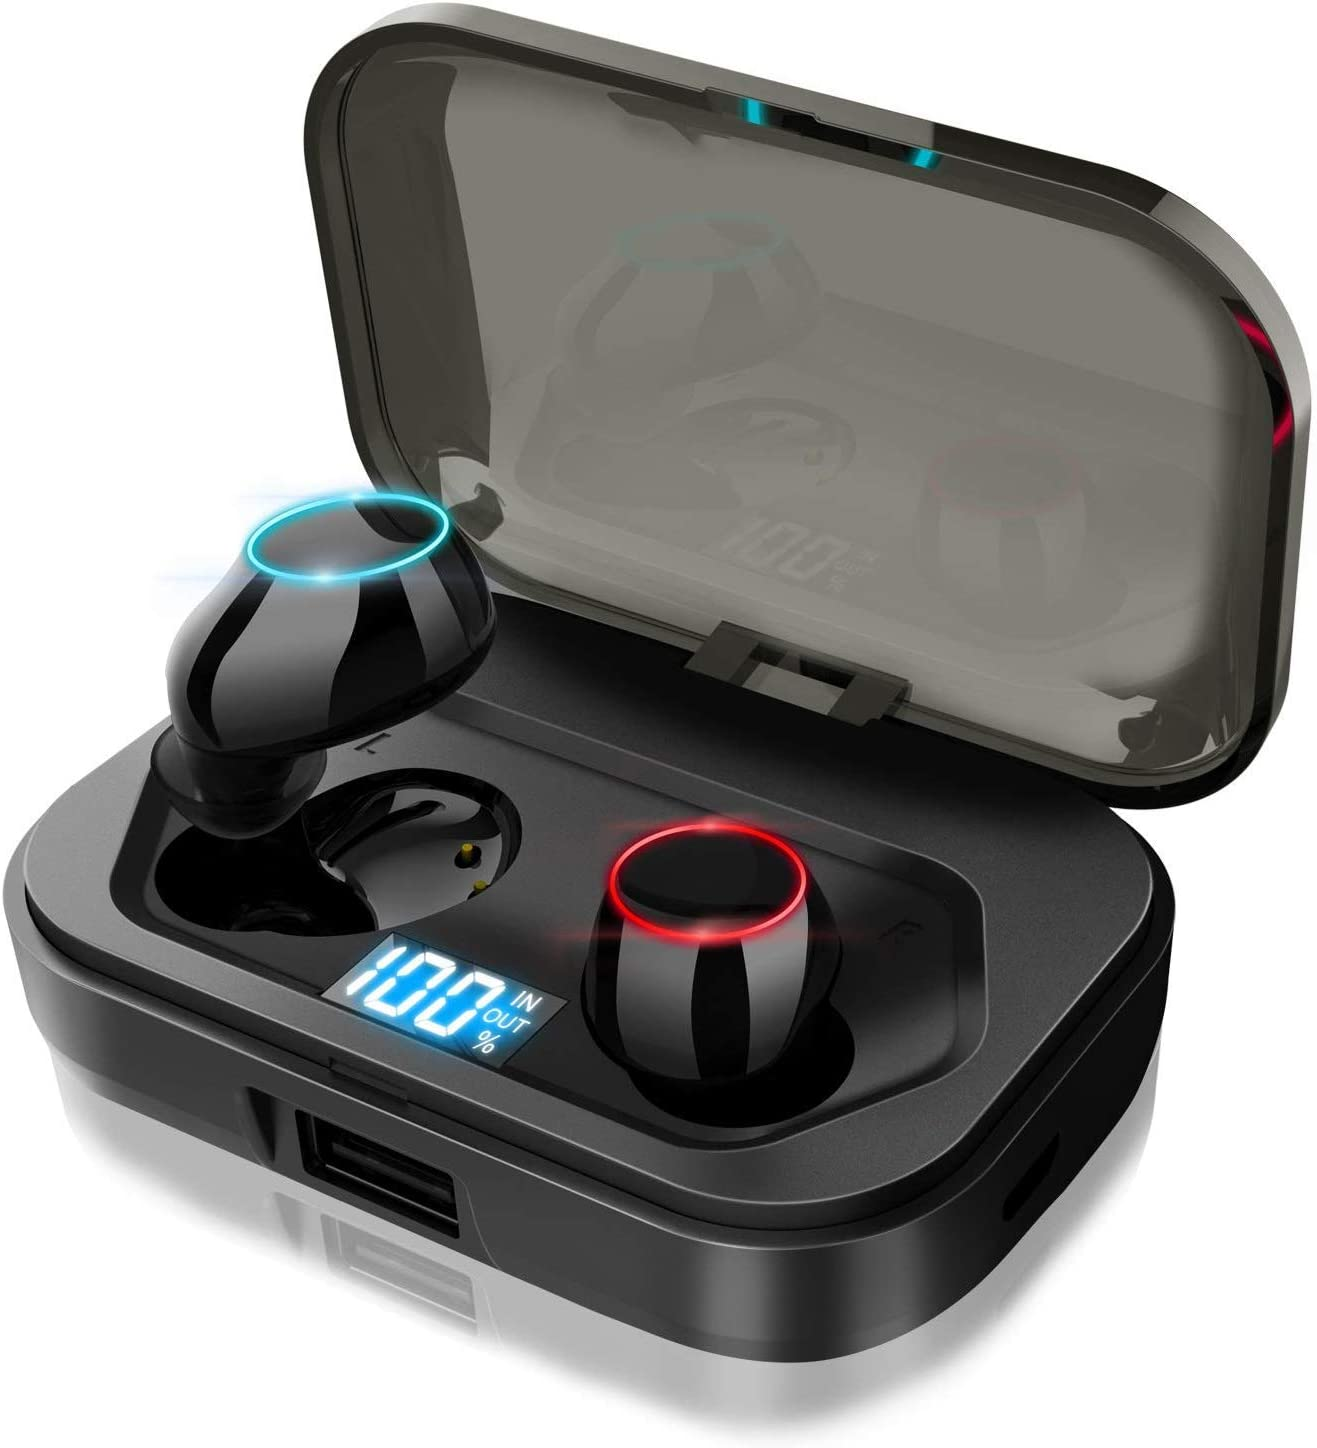 Wireless Earbuds, LEHII Latest Bluetooth 5.0 Headphones, True Wireless Earbuds with 3500mAh Charging Case, Deep Bass 3D Stereo Sound, Built-in Microphone LED Digital Display Headsets for Sports